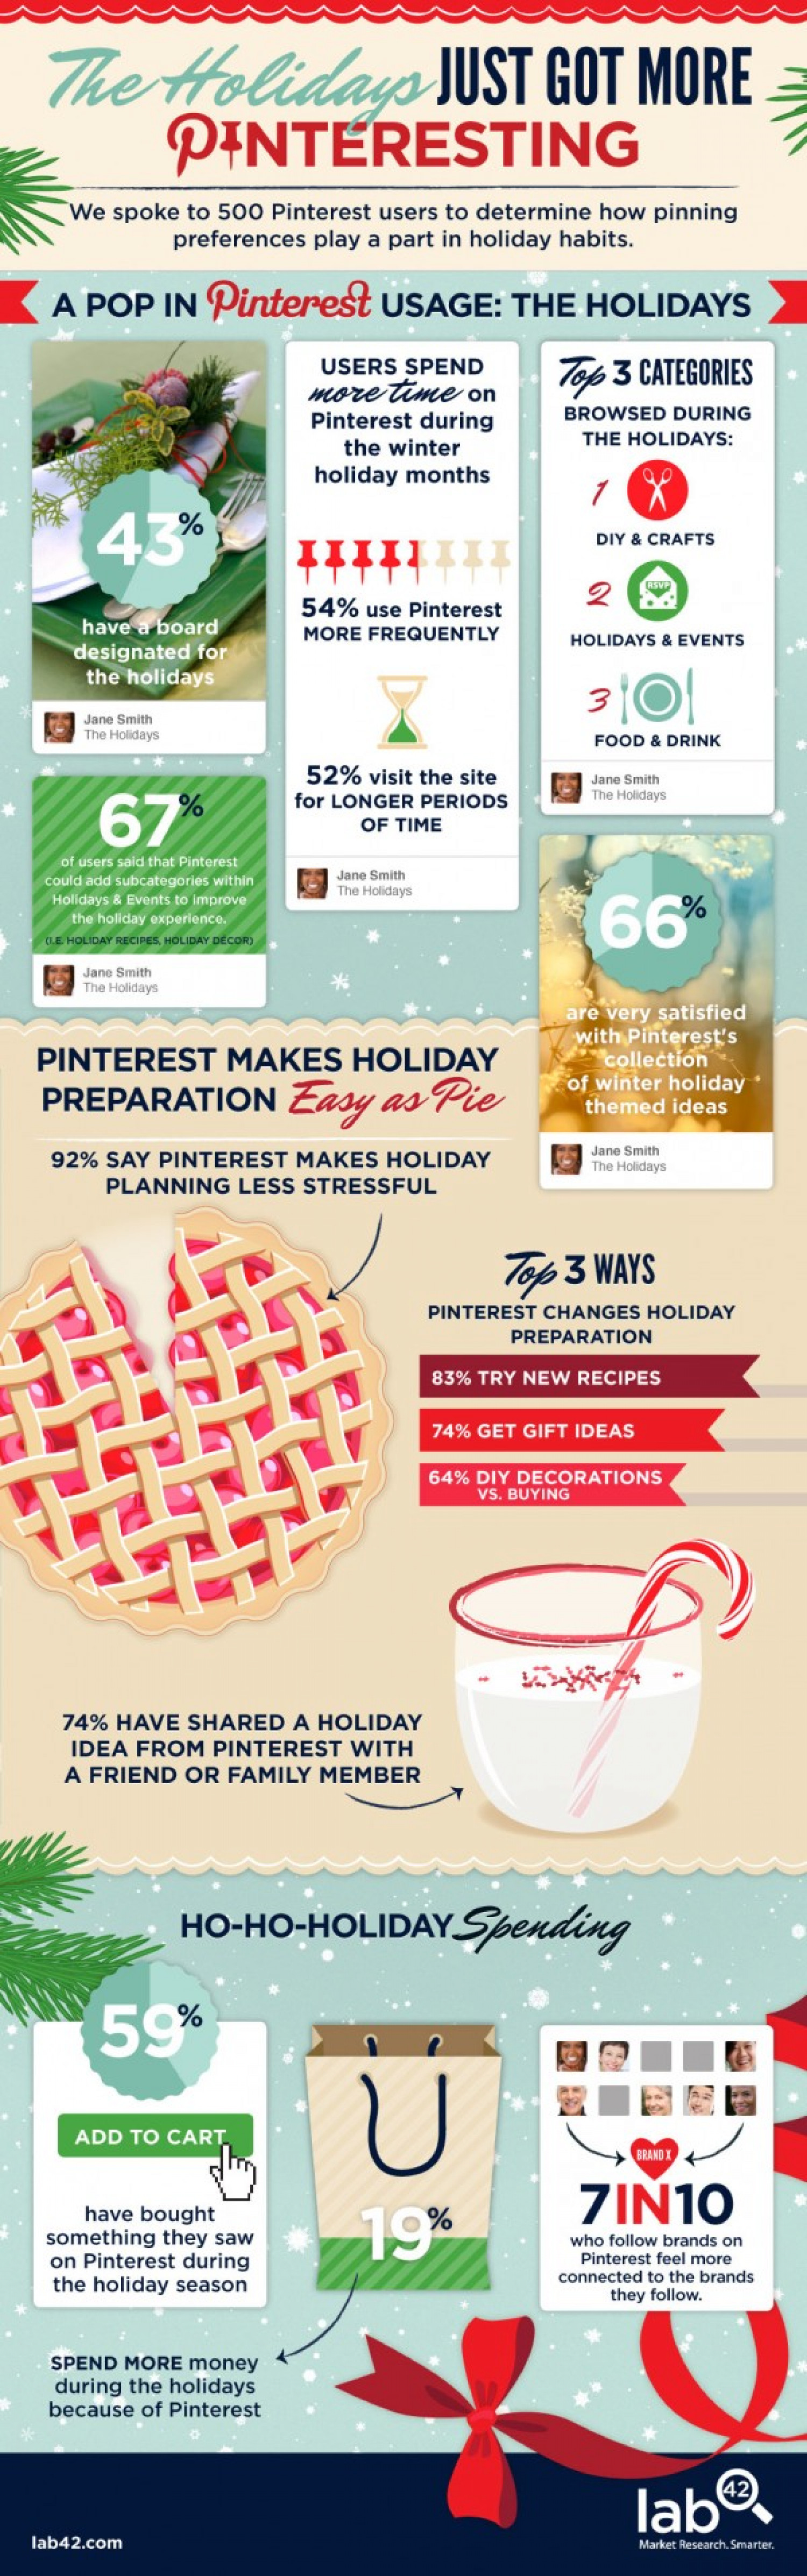 The Holidays Just Got More Pinteresting Infographic